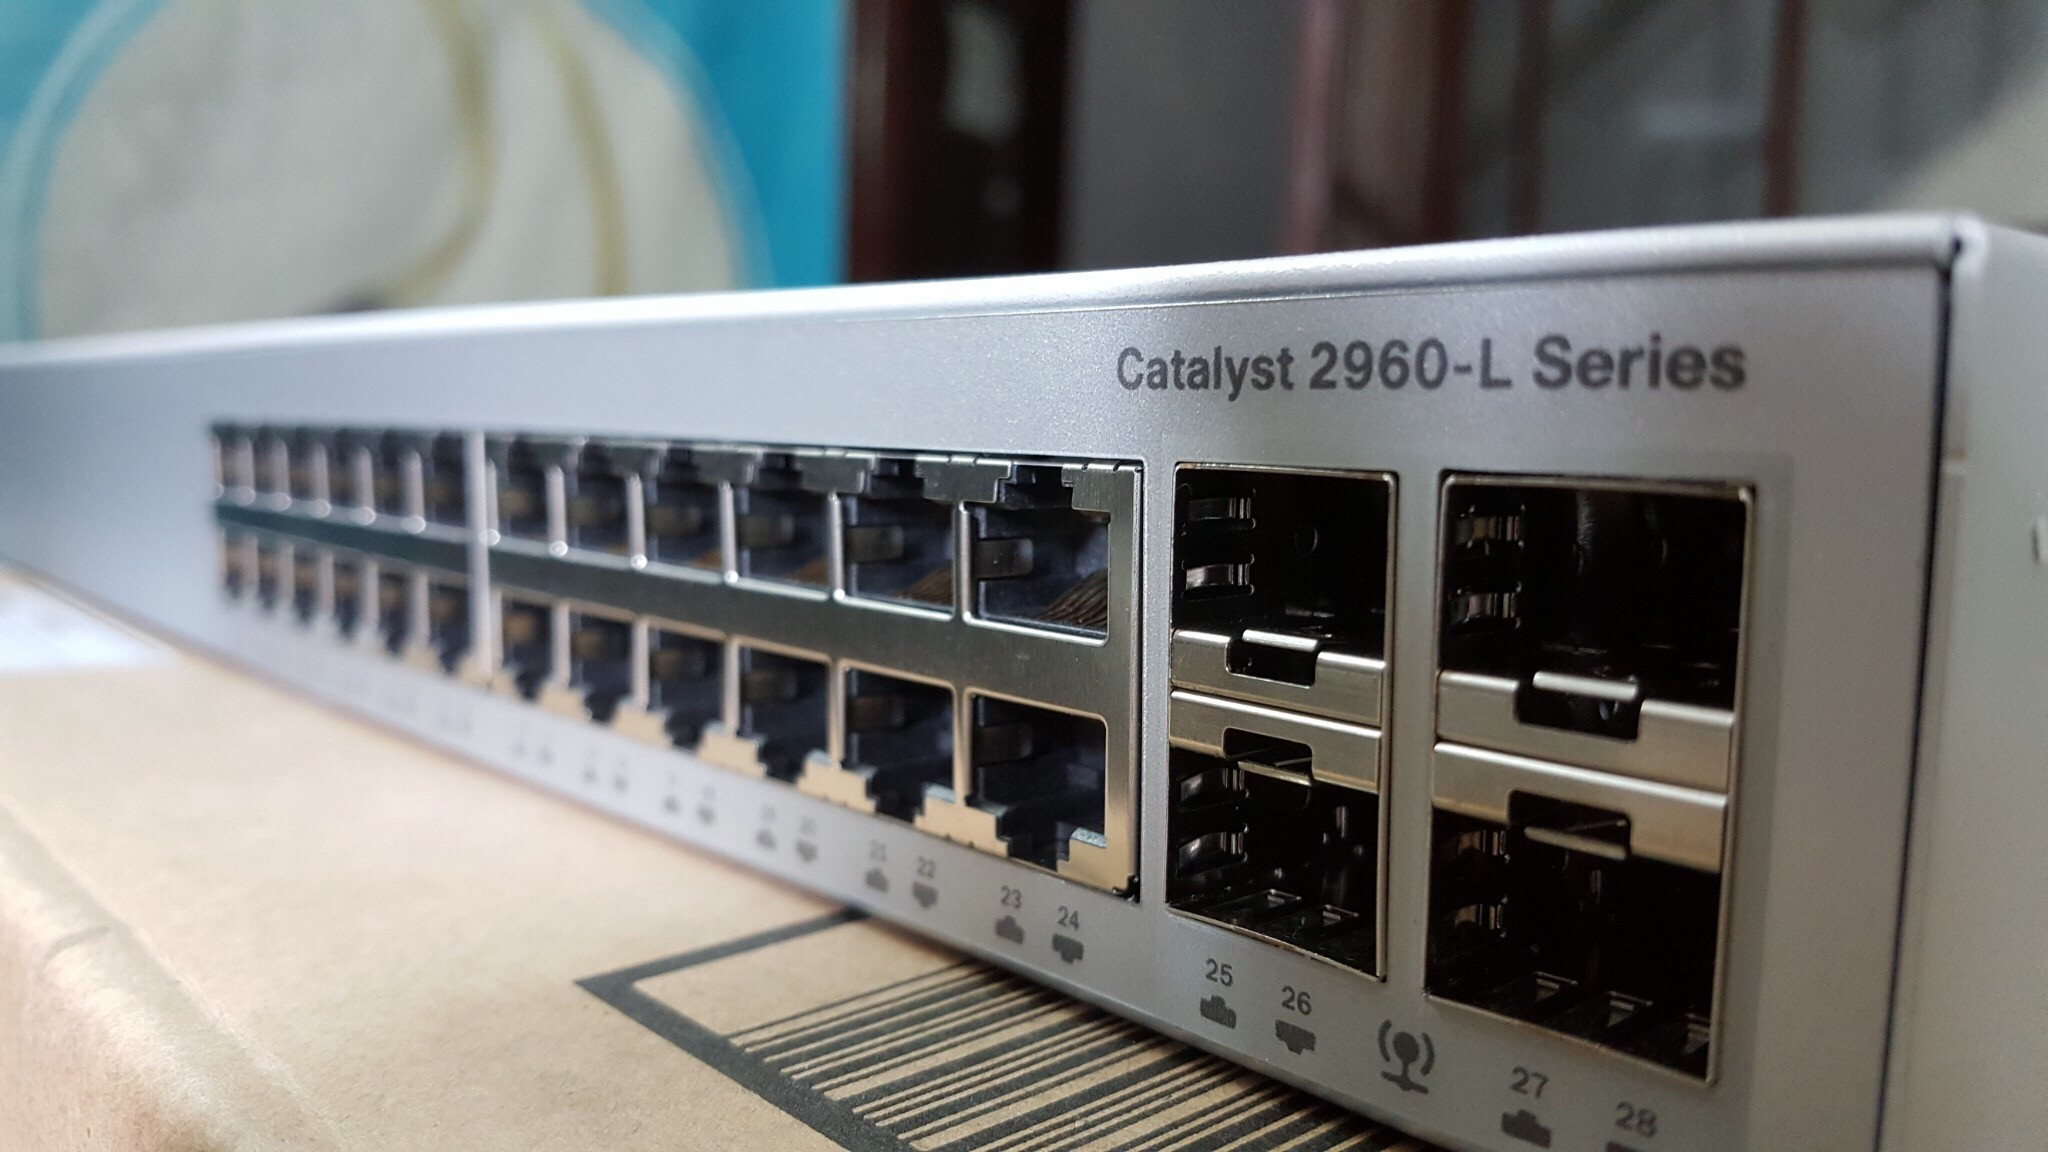 cisco catalyst 2960-l